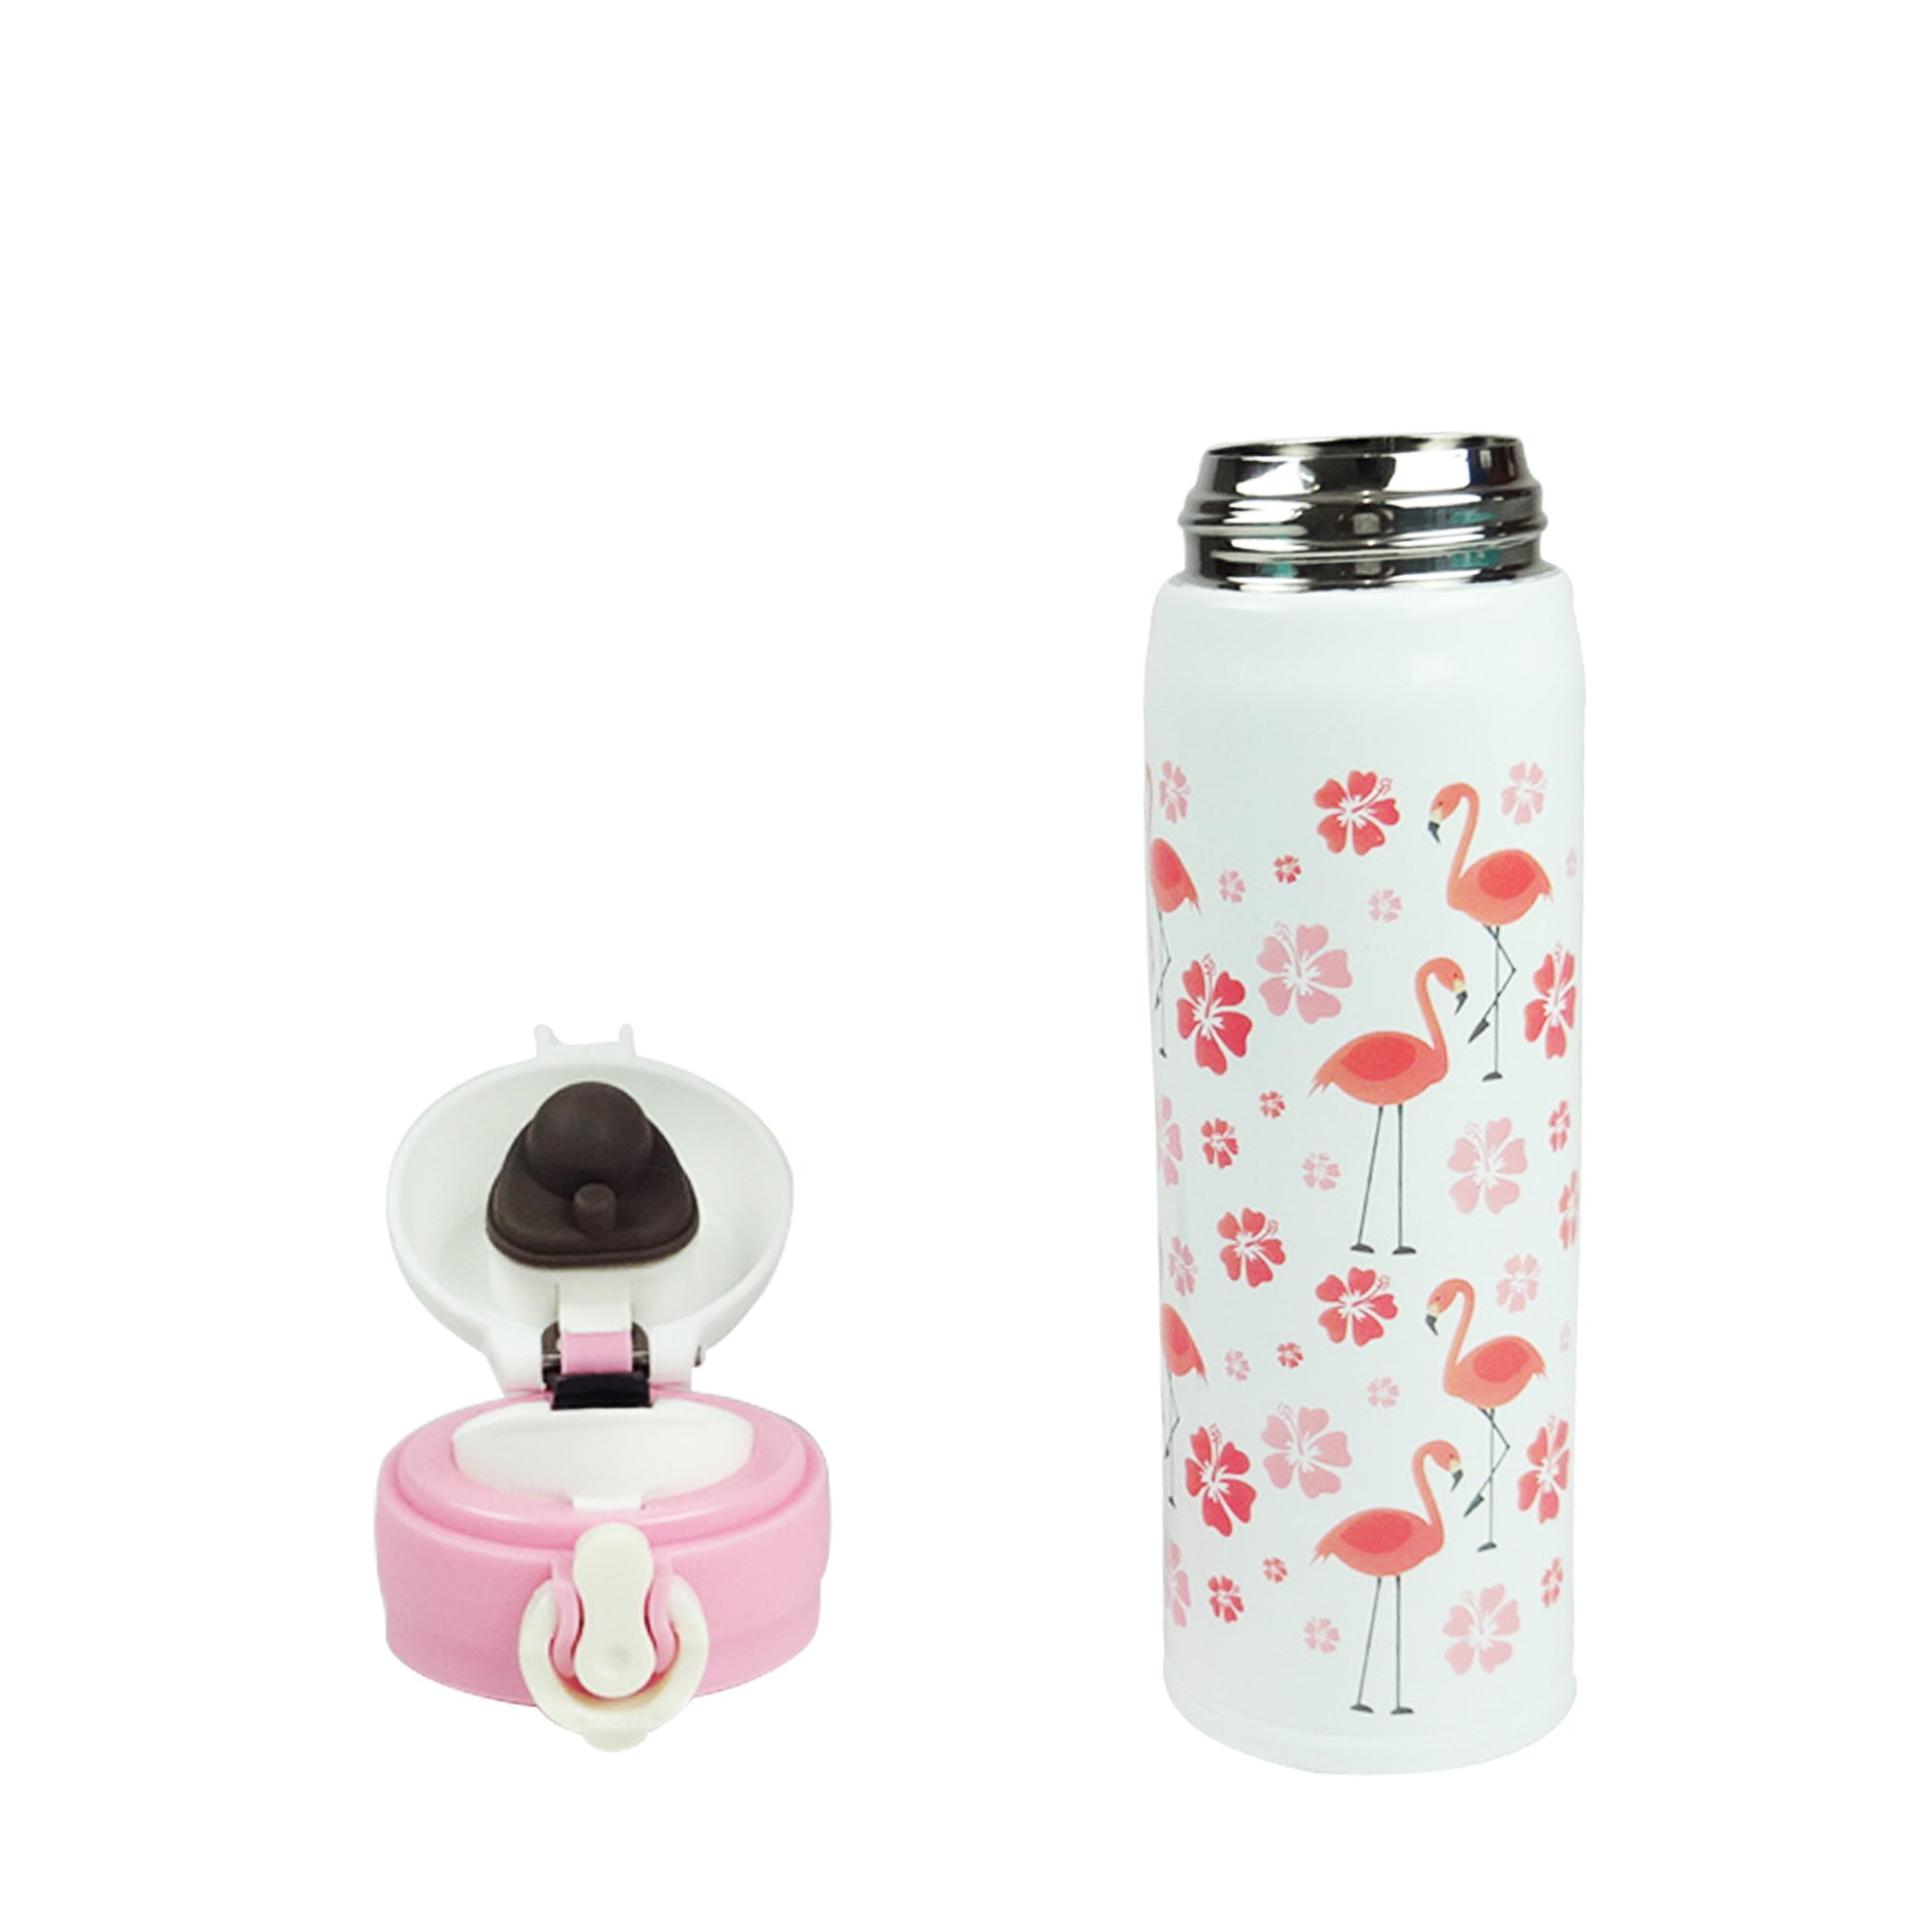 Flamingo Flask - White Flowers